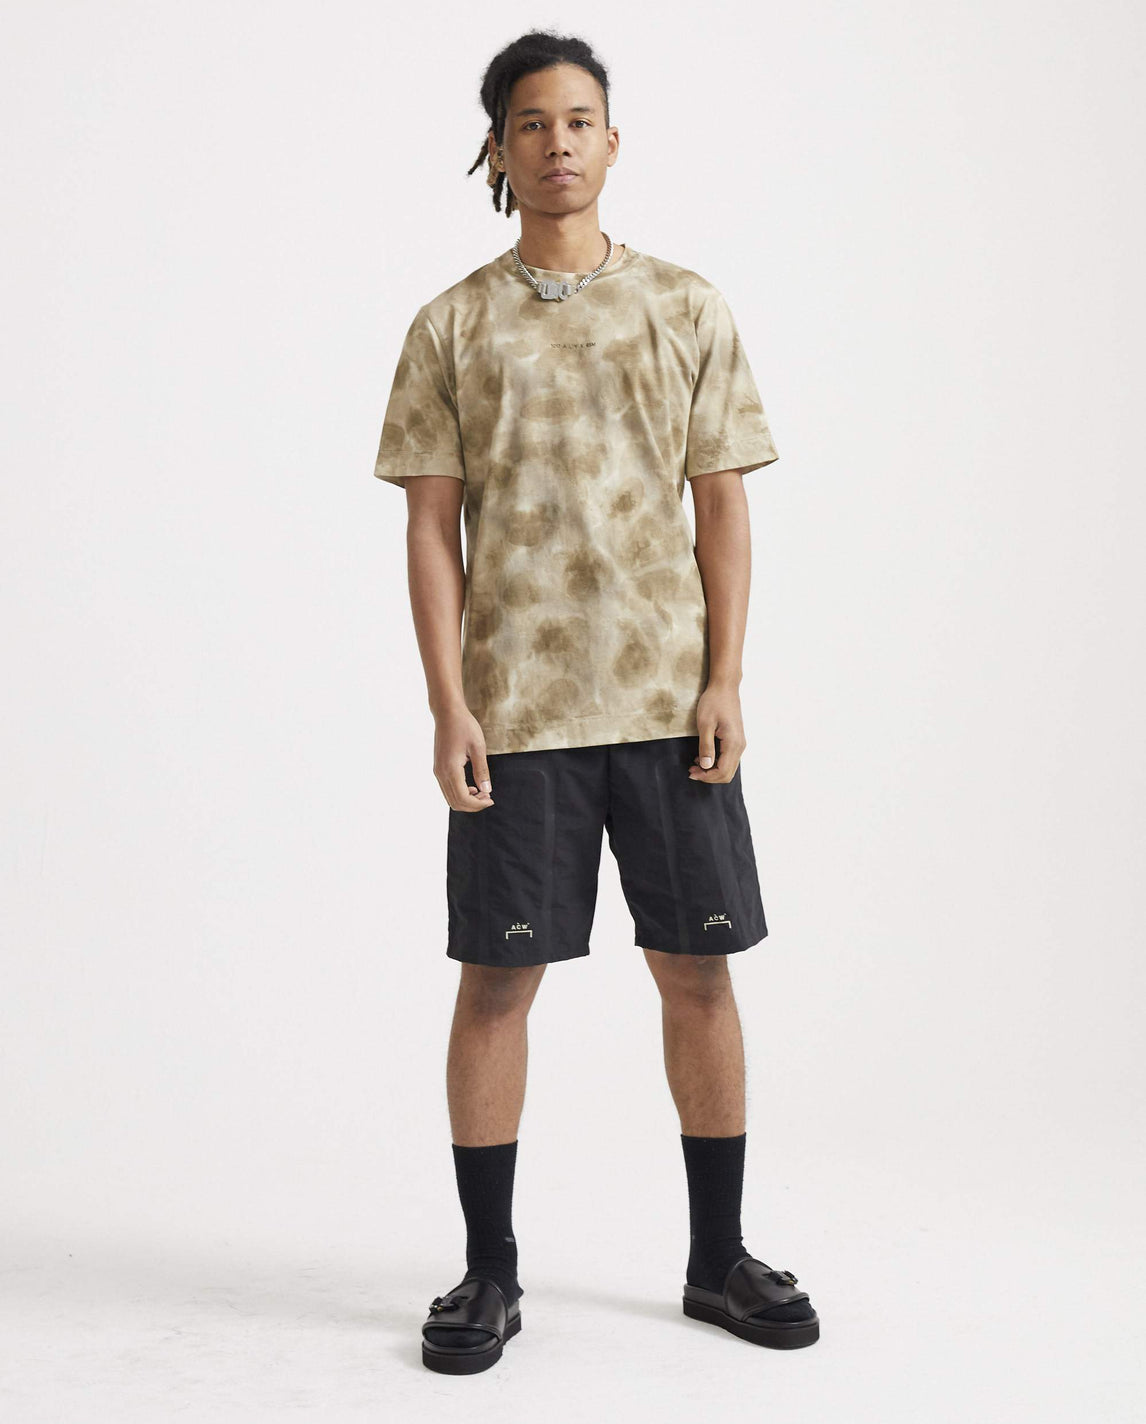 Cut-Out Graphic Print T-Shirt - Dark Sand MENS 1017 ALYX 9SM